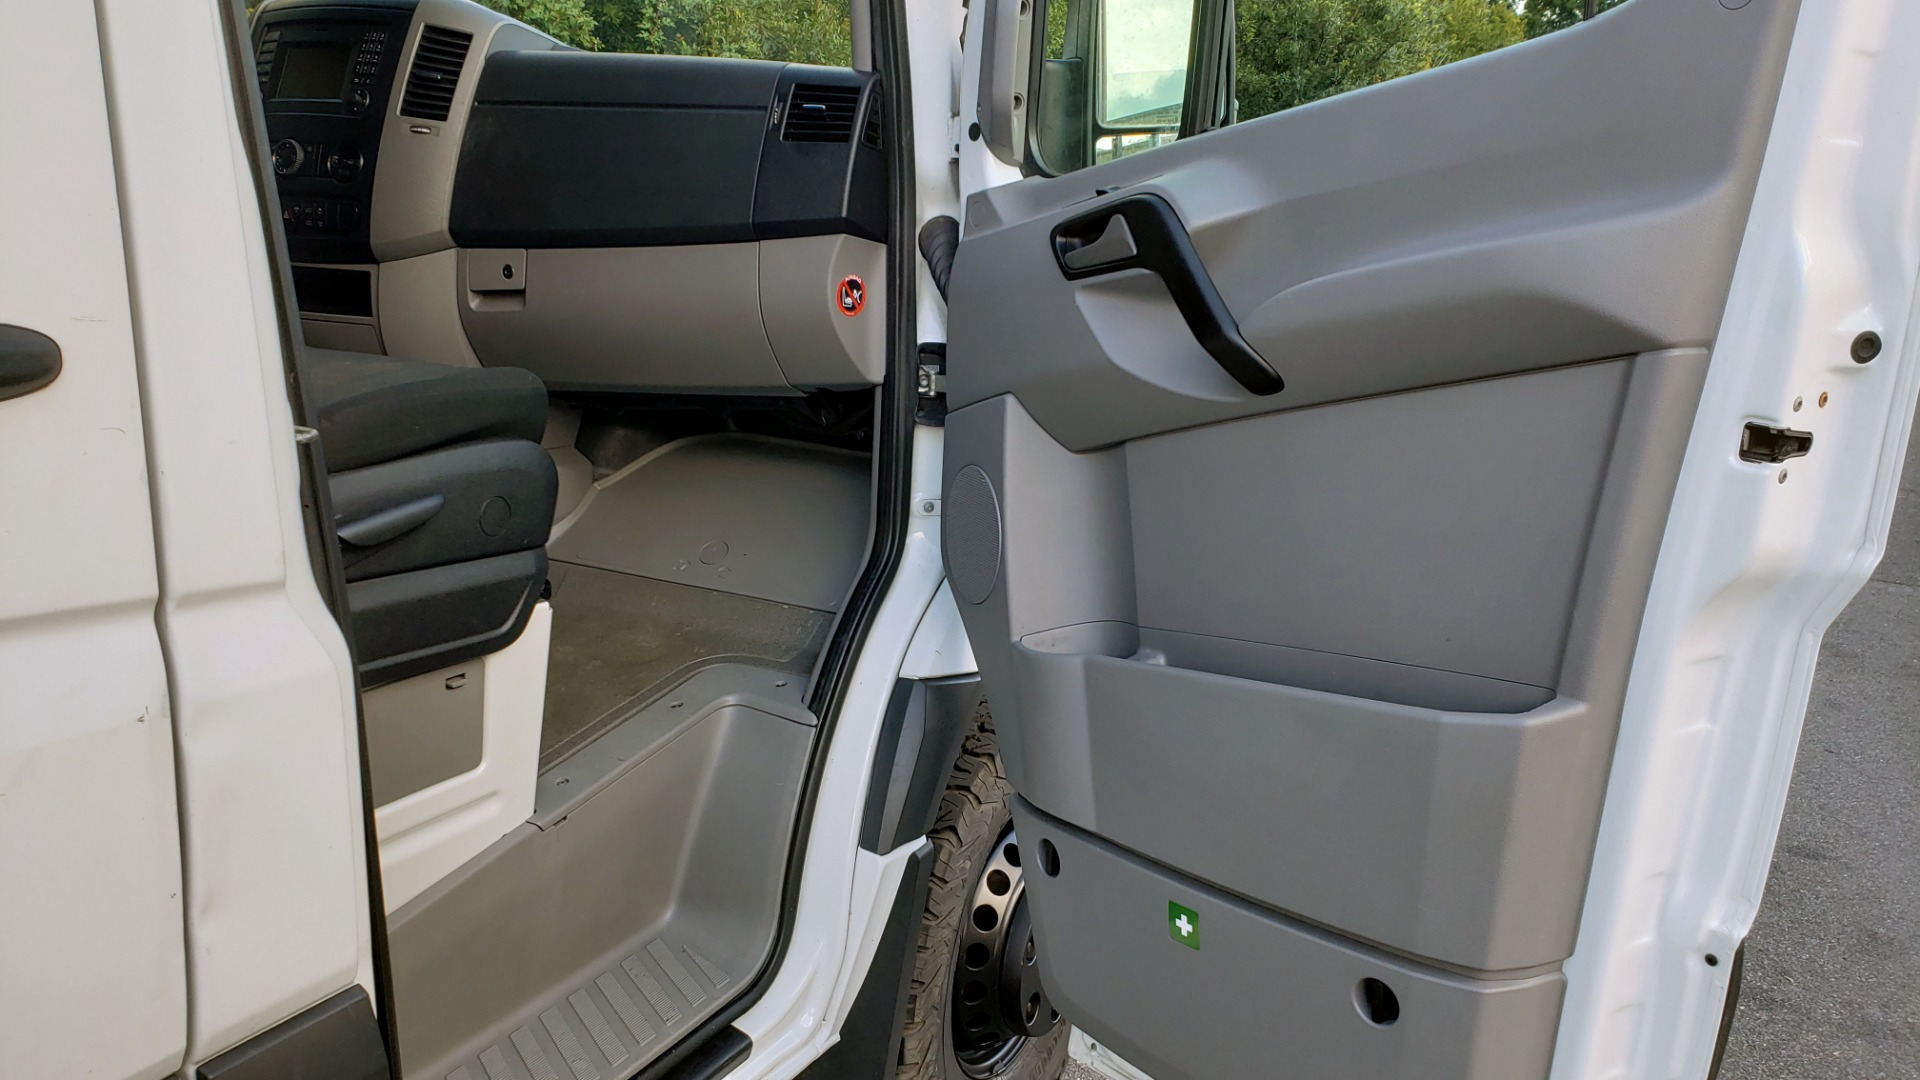 Used 2015 Mercedes-Benz SPRINTER CARGO VAN 4x4 3500 170 EXT / 3.0L V6 TURBO DIESEL / 5-SPD AUTO / REARVIEW for sale Sold at Formula Imports in Charlotte NC 28227 18